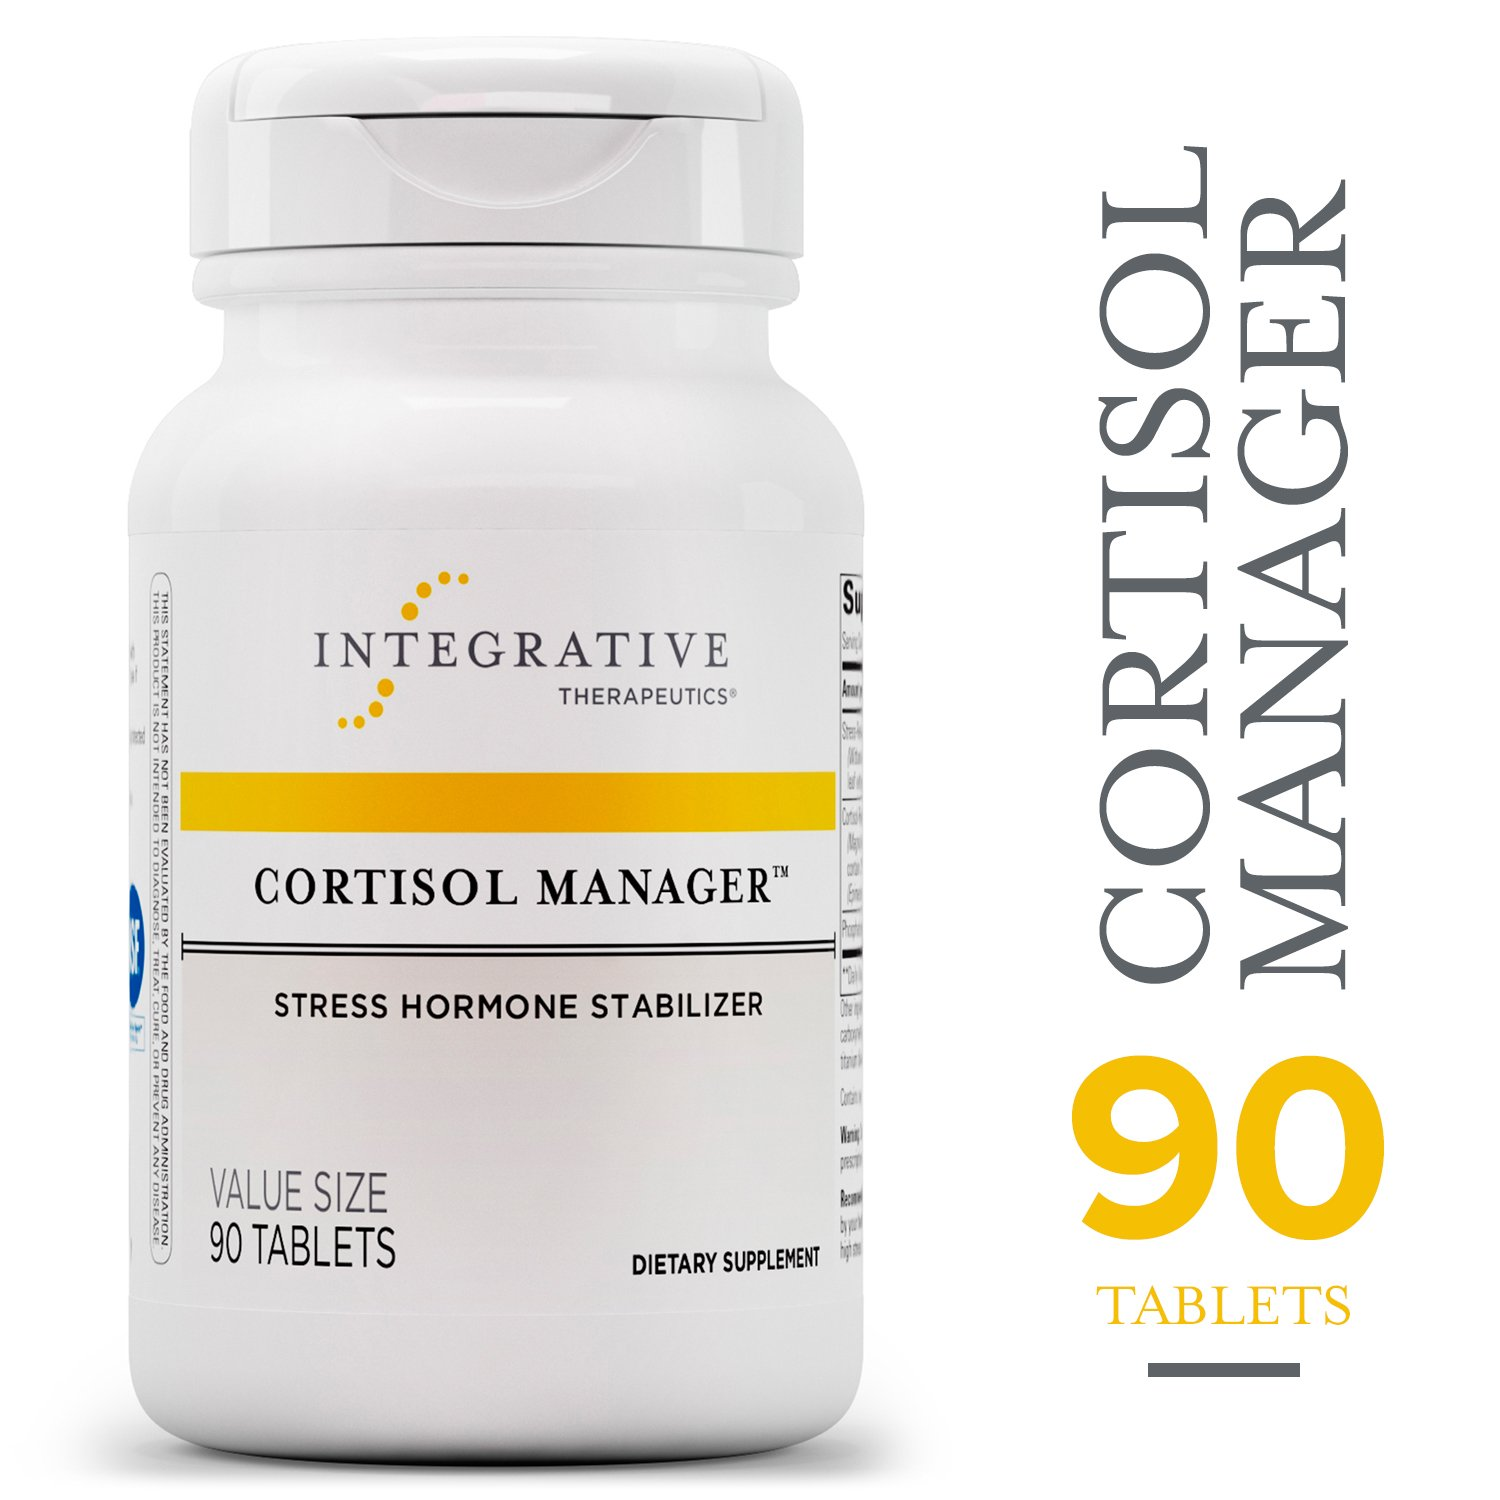 The Cortisol Manager by Integrative Therapeutics travel product recommended by John Breese on Pretty Progressive.